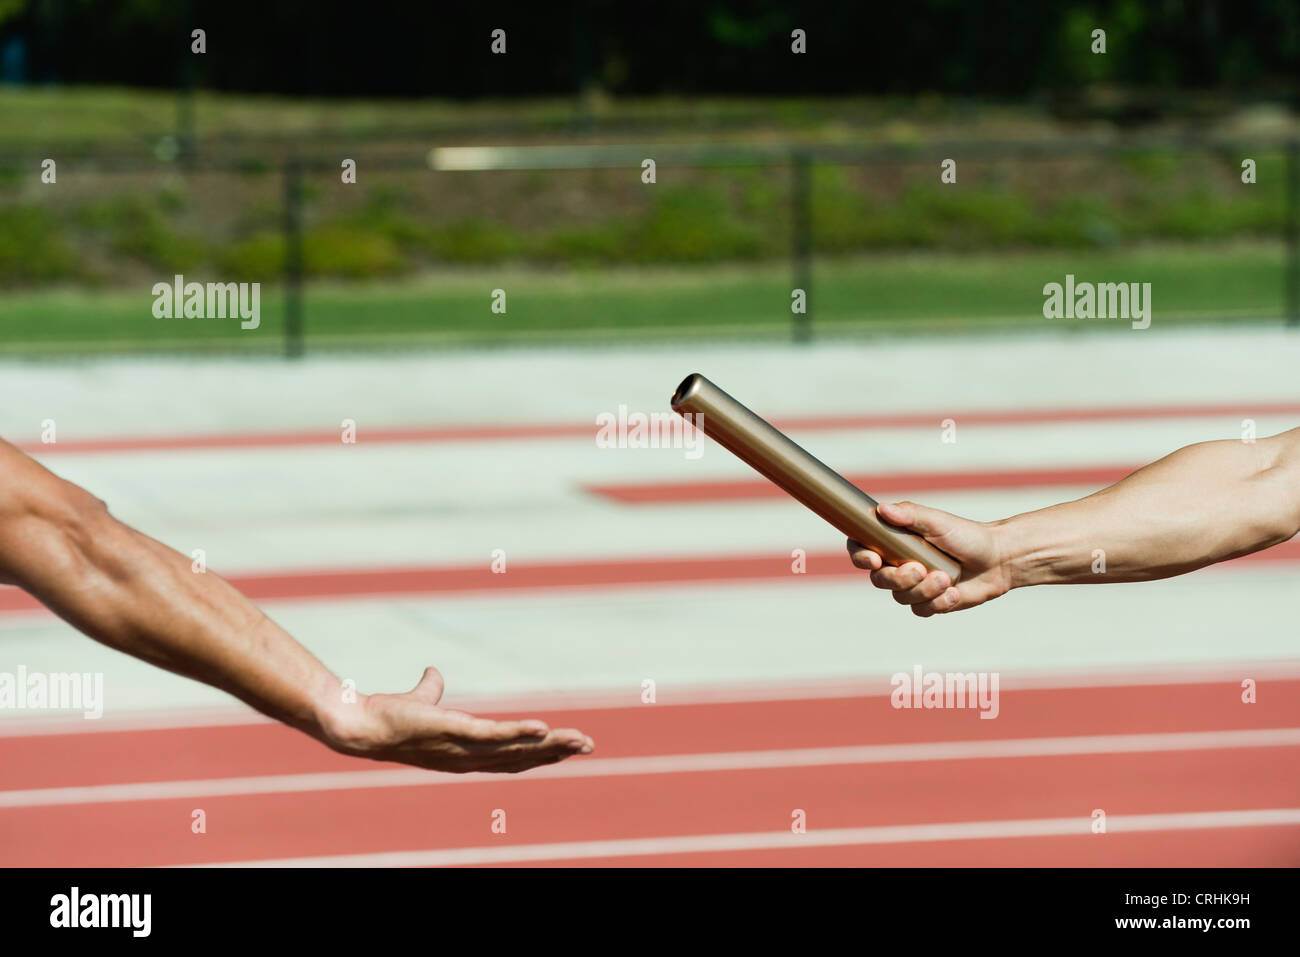 Businessman crouched at starting line on running track - Stock Image